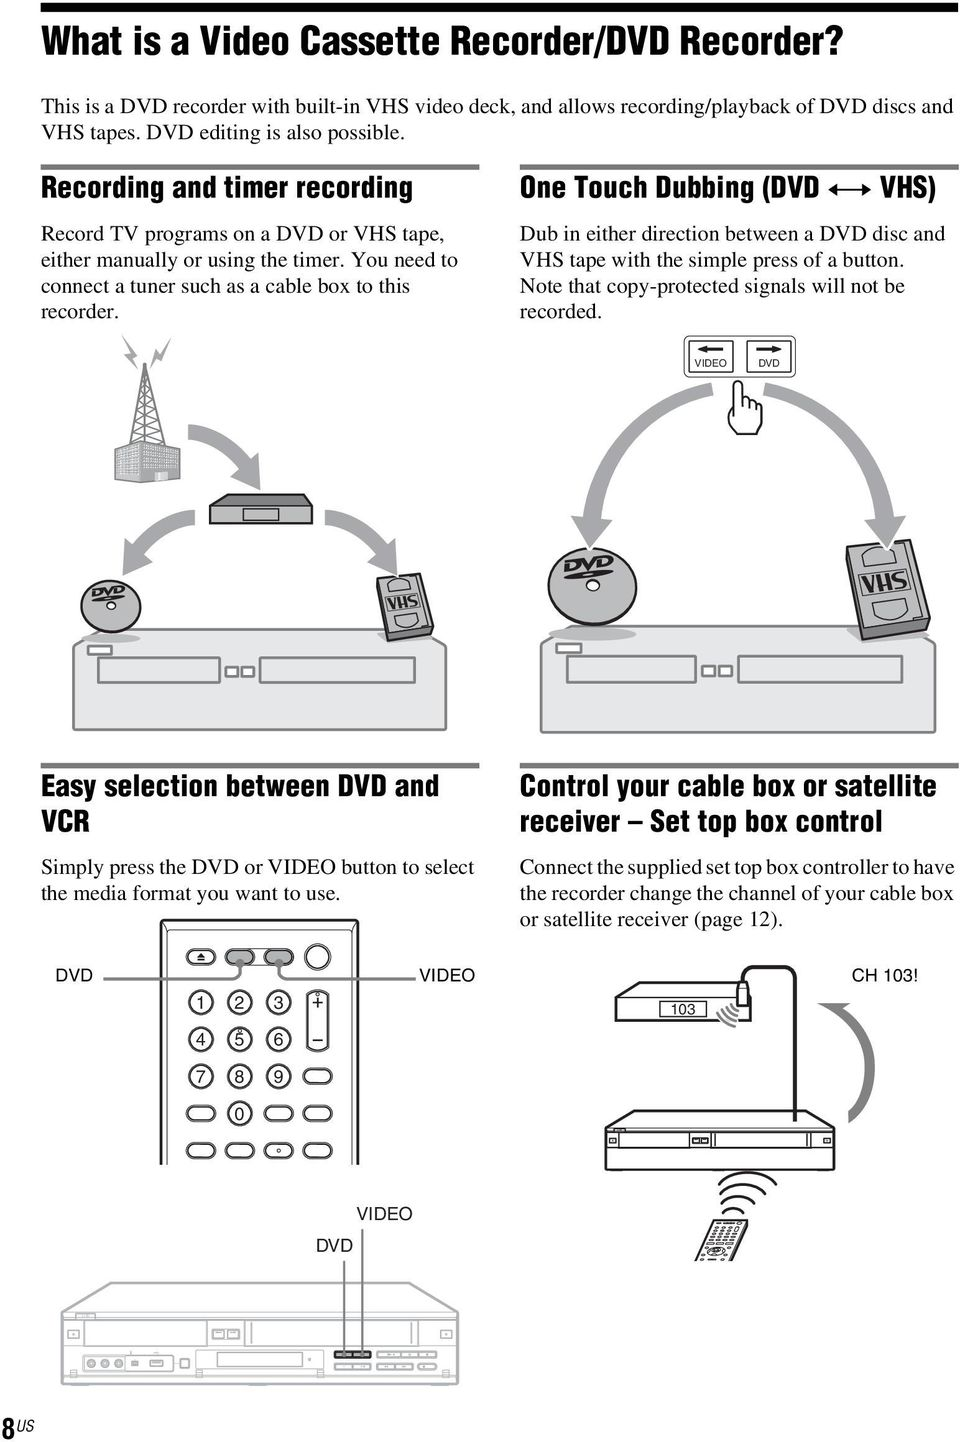 One Touch Dubbing (DVD y VHS) Dub in either direction between a DVD disc and VHS tape with the simple press of a button. Note that copy-protected signals will not be recorded.